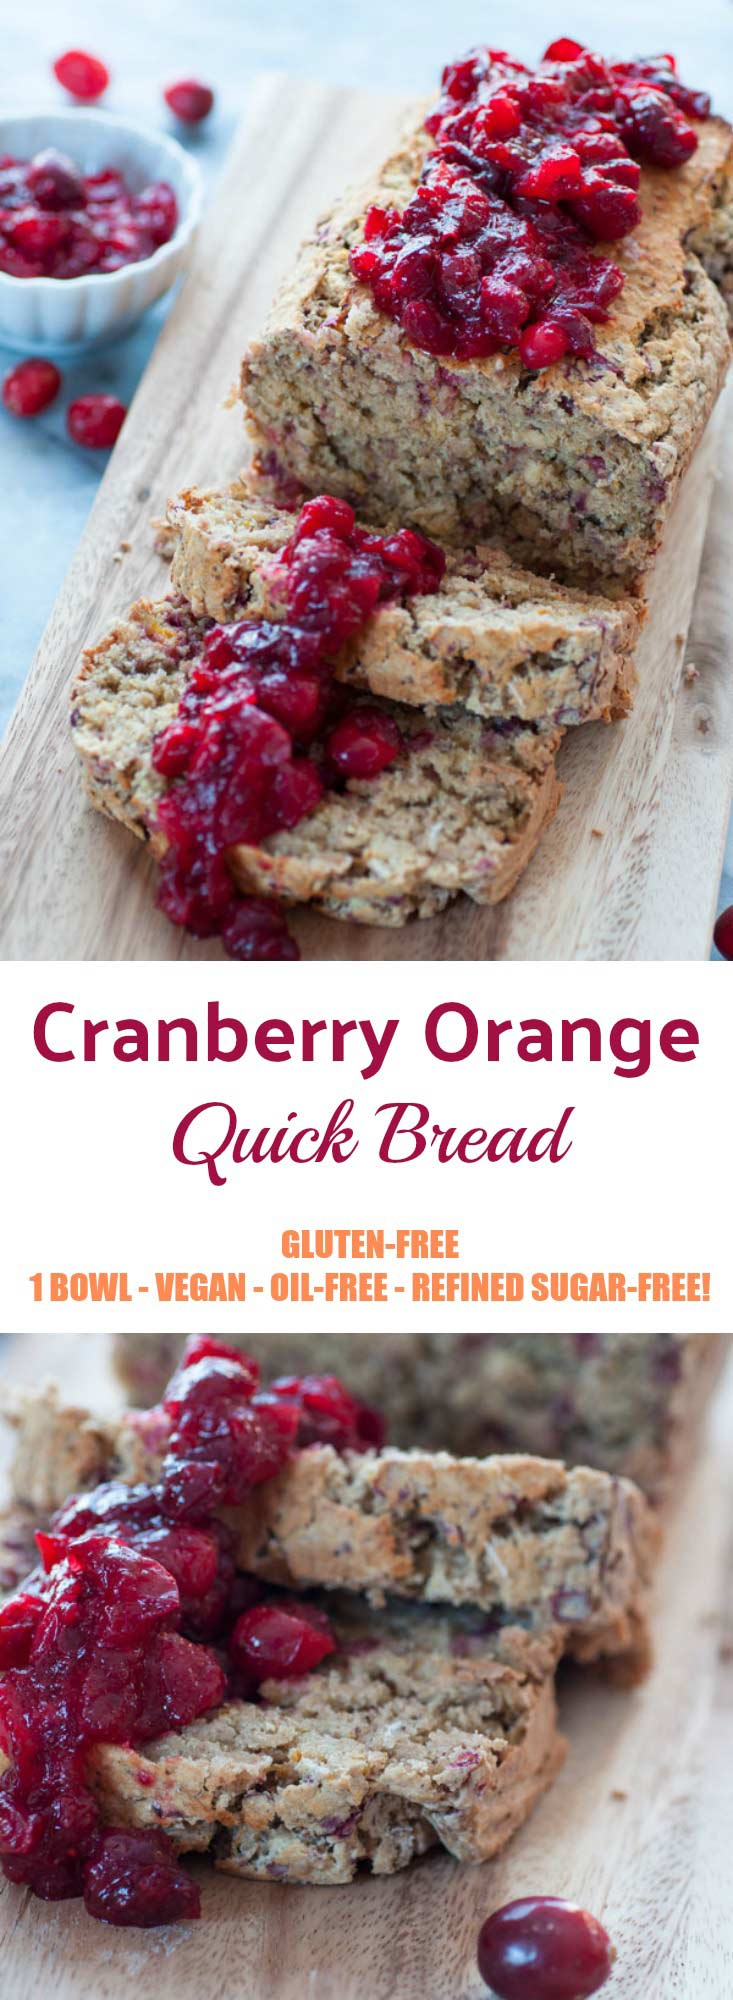 Cranberry Orange Quick Bread that's full of flavor and gluten-free, oil-free, refined sugar-free and vegan! Perfect for a healthy breakfast or afternoon tea!